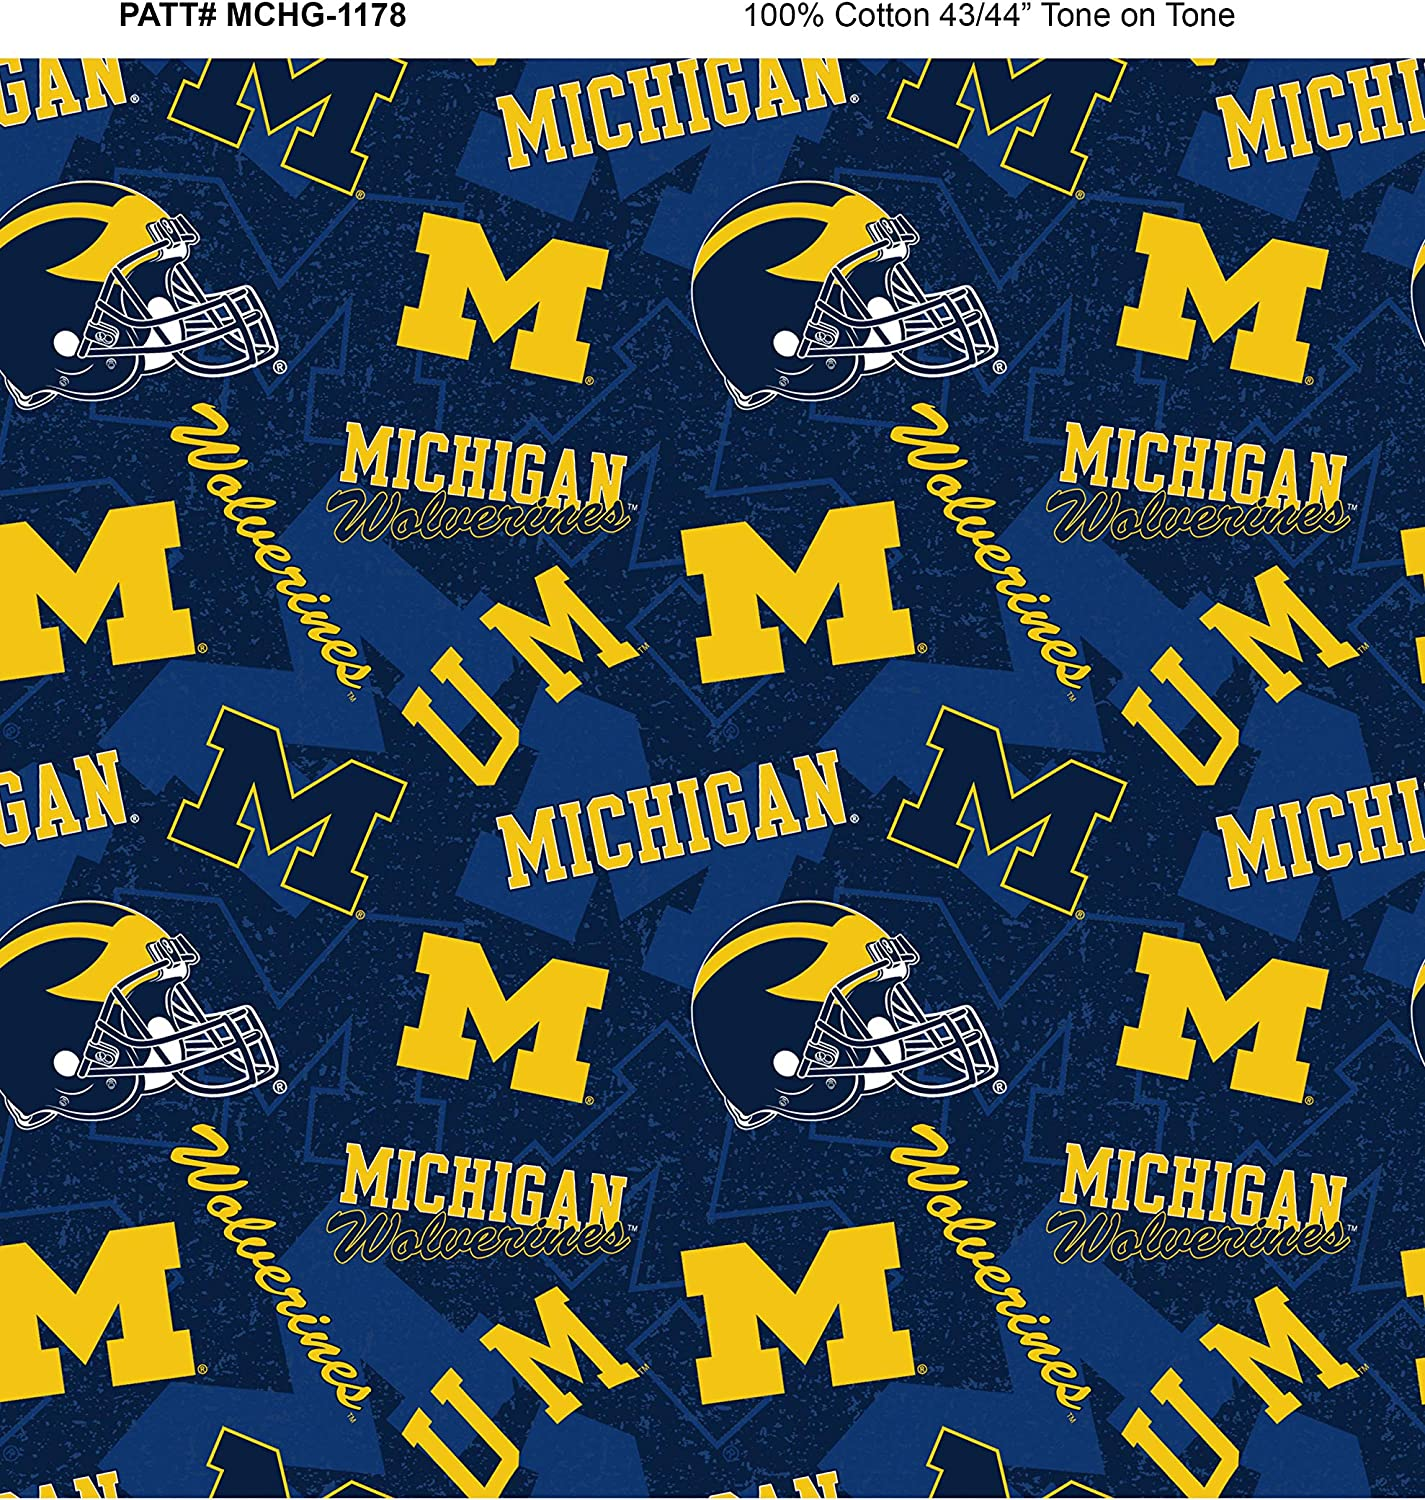 Fabric by the Yard Michigan 1178 Tone on Tone Navy//Yellow Sykel Enterprises NCAA